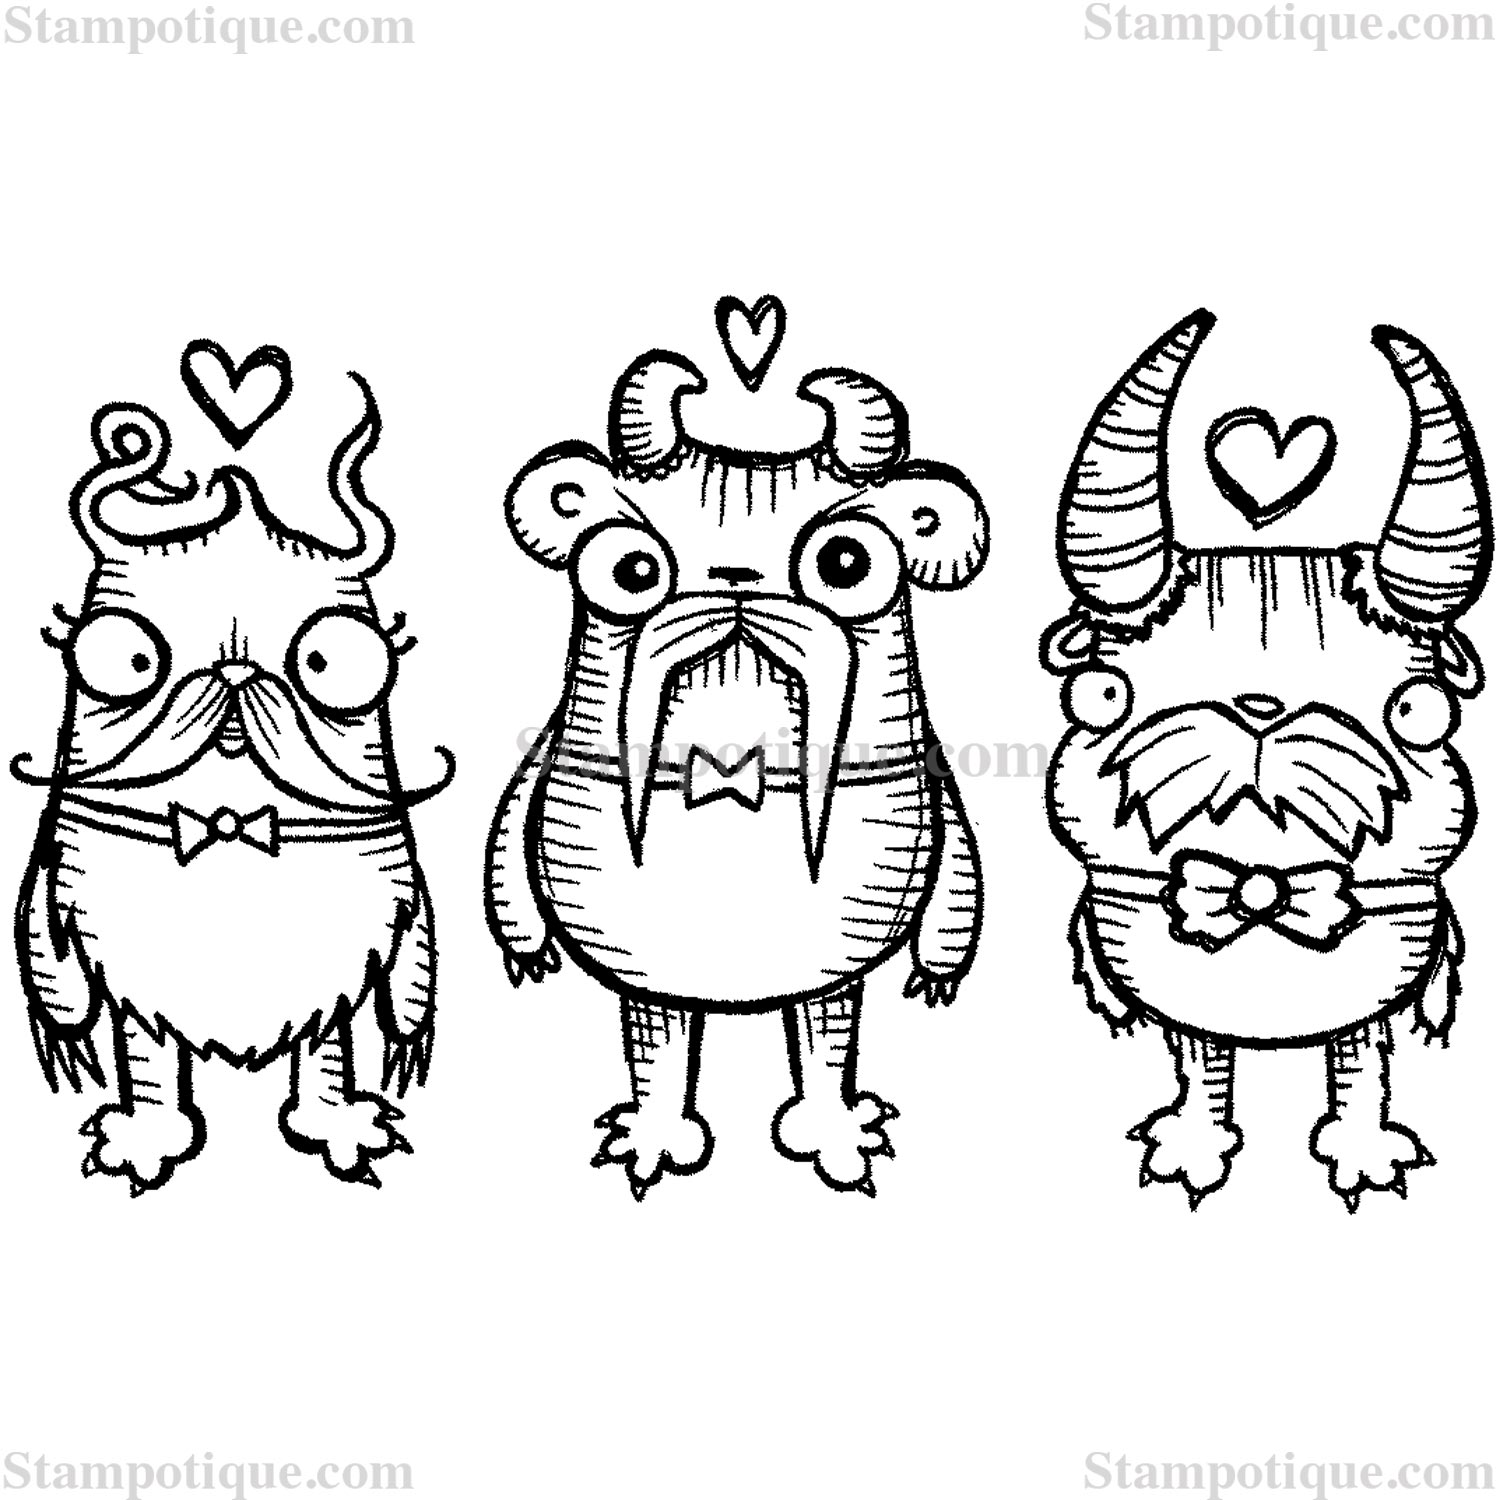 Smitten Moustache Monsters